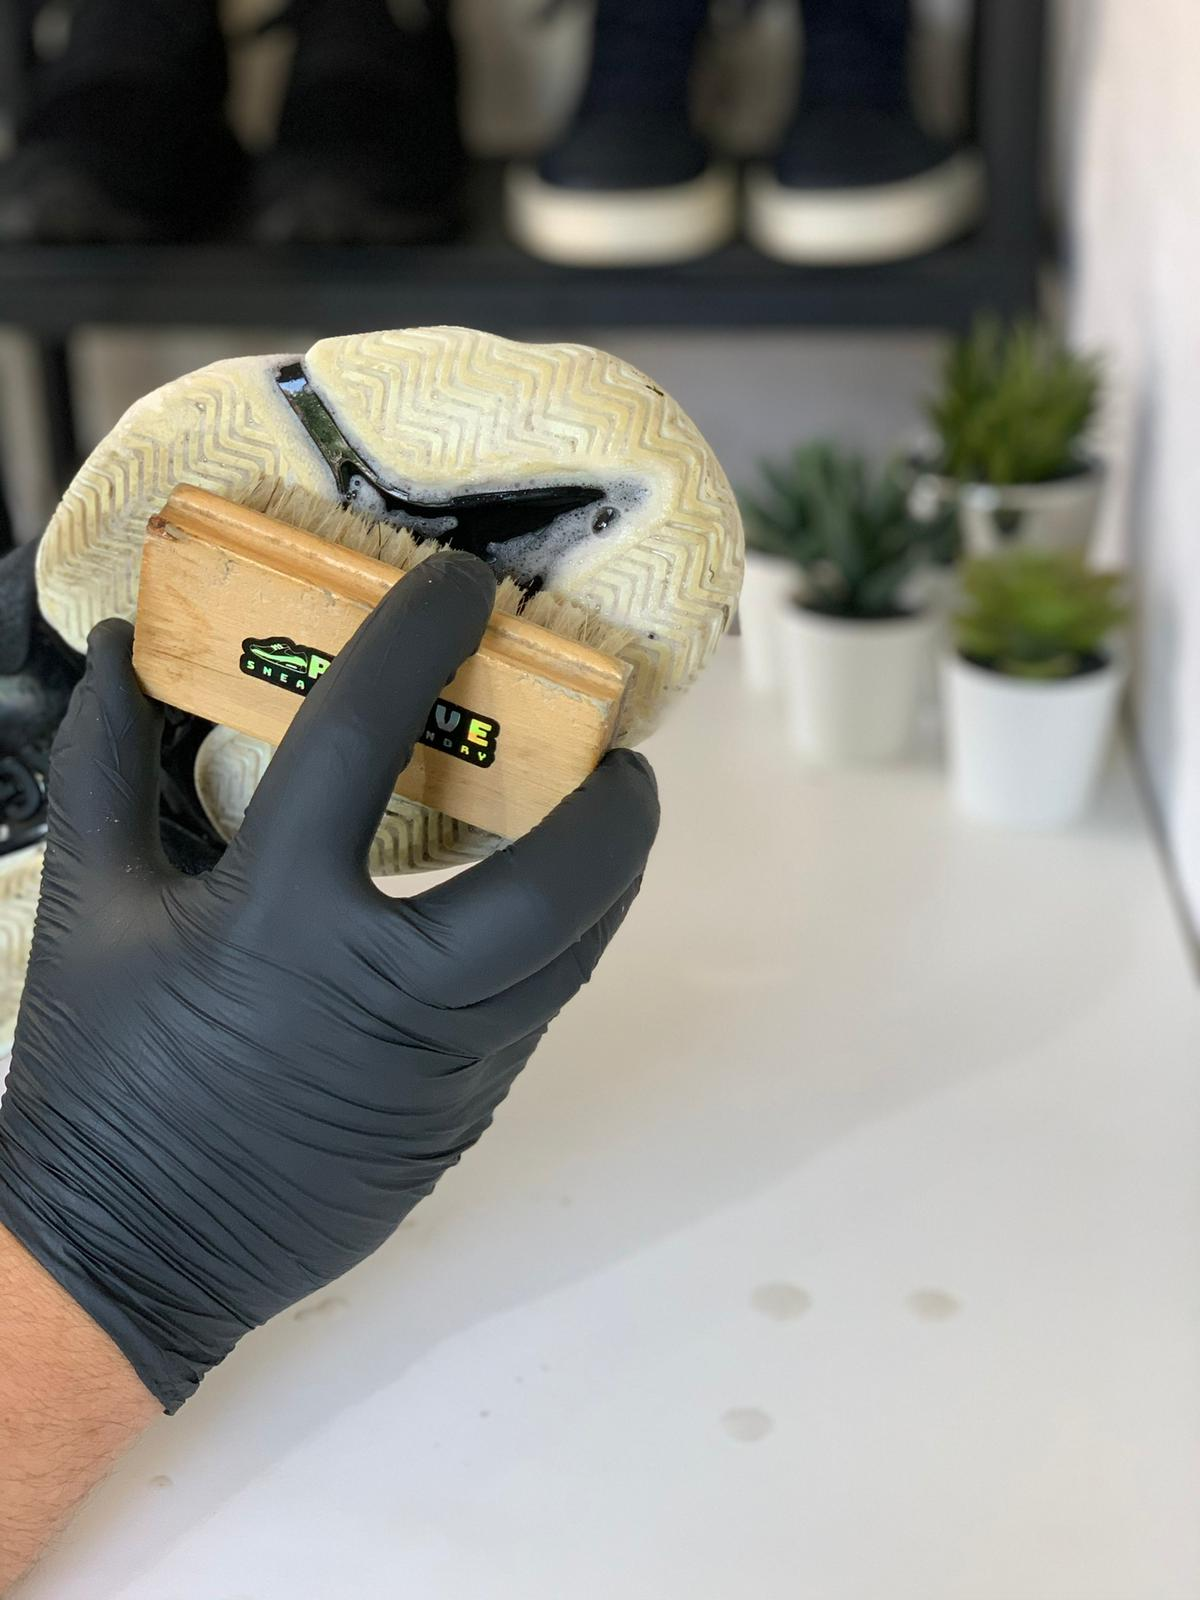 Cleaning sole of shoes in revive sneaker laundry